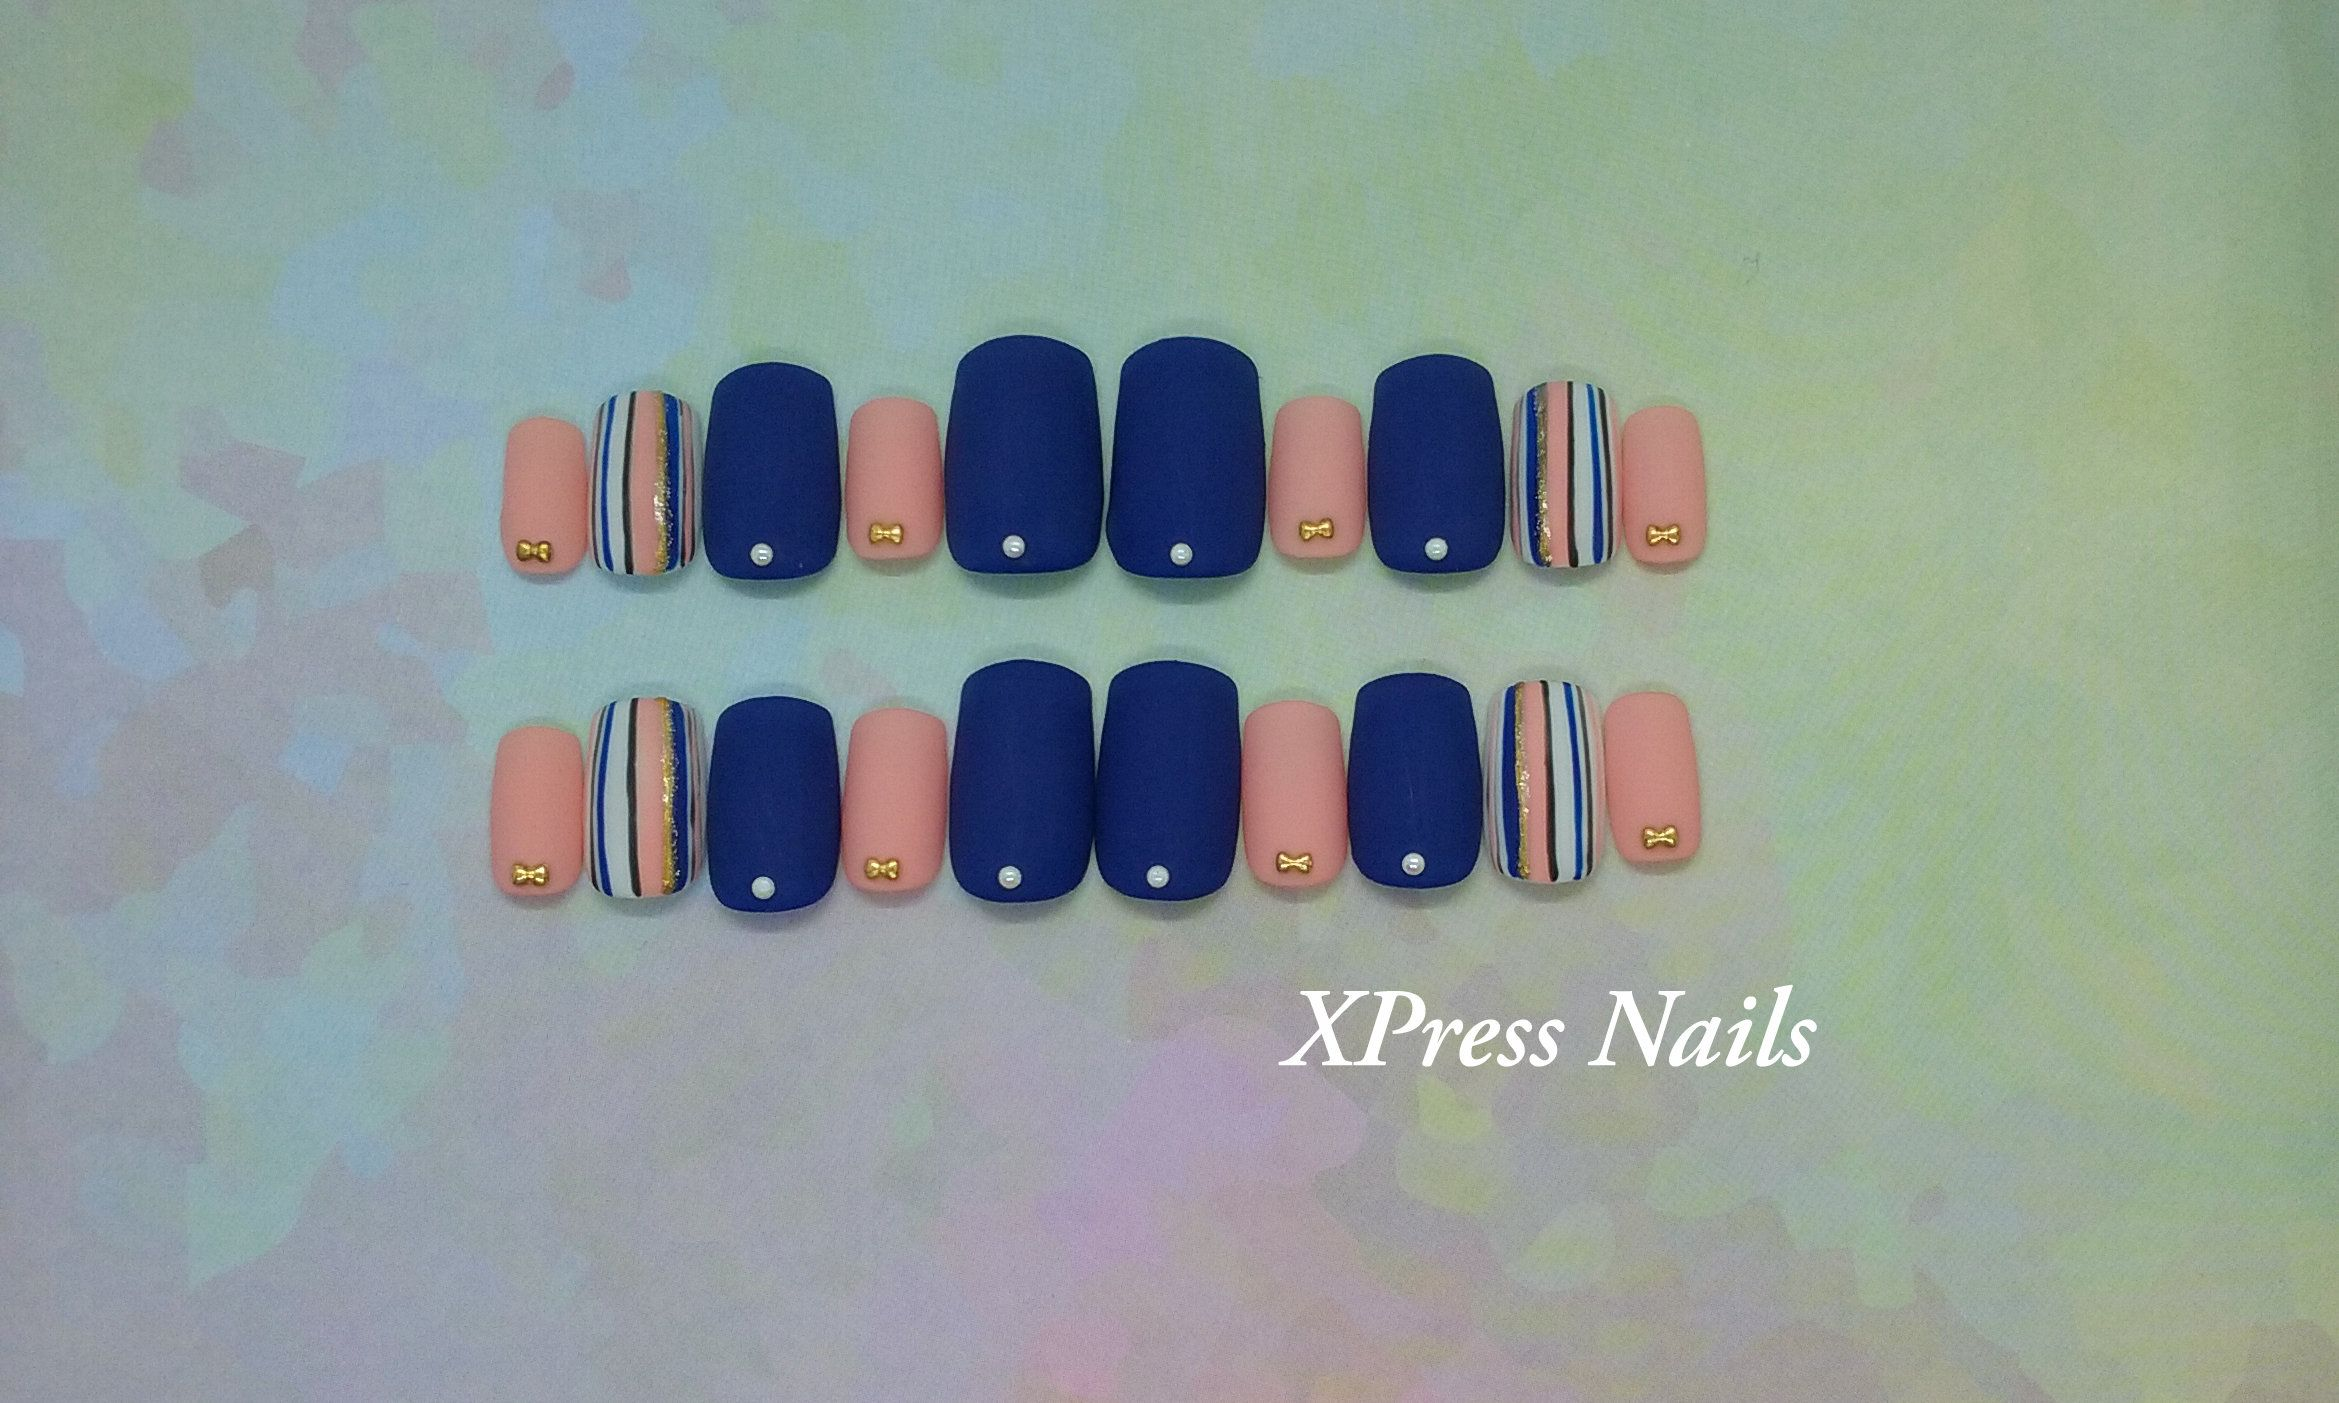 Matte Press On Nails In Navy Blue And Peach With Striped Accent Nails And Decorations Fake Nails Xpress Nails Press On Nails Nails Accent Nails